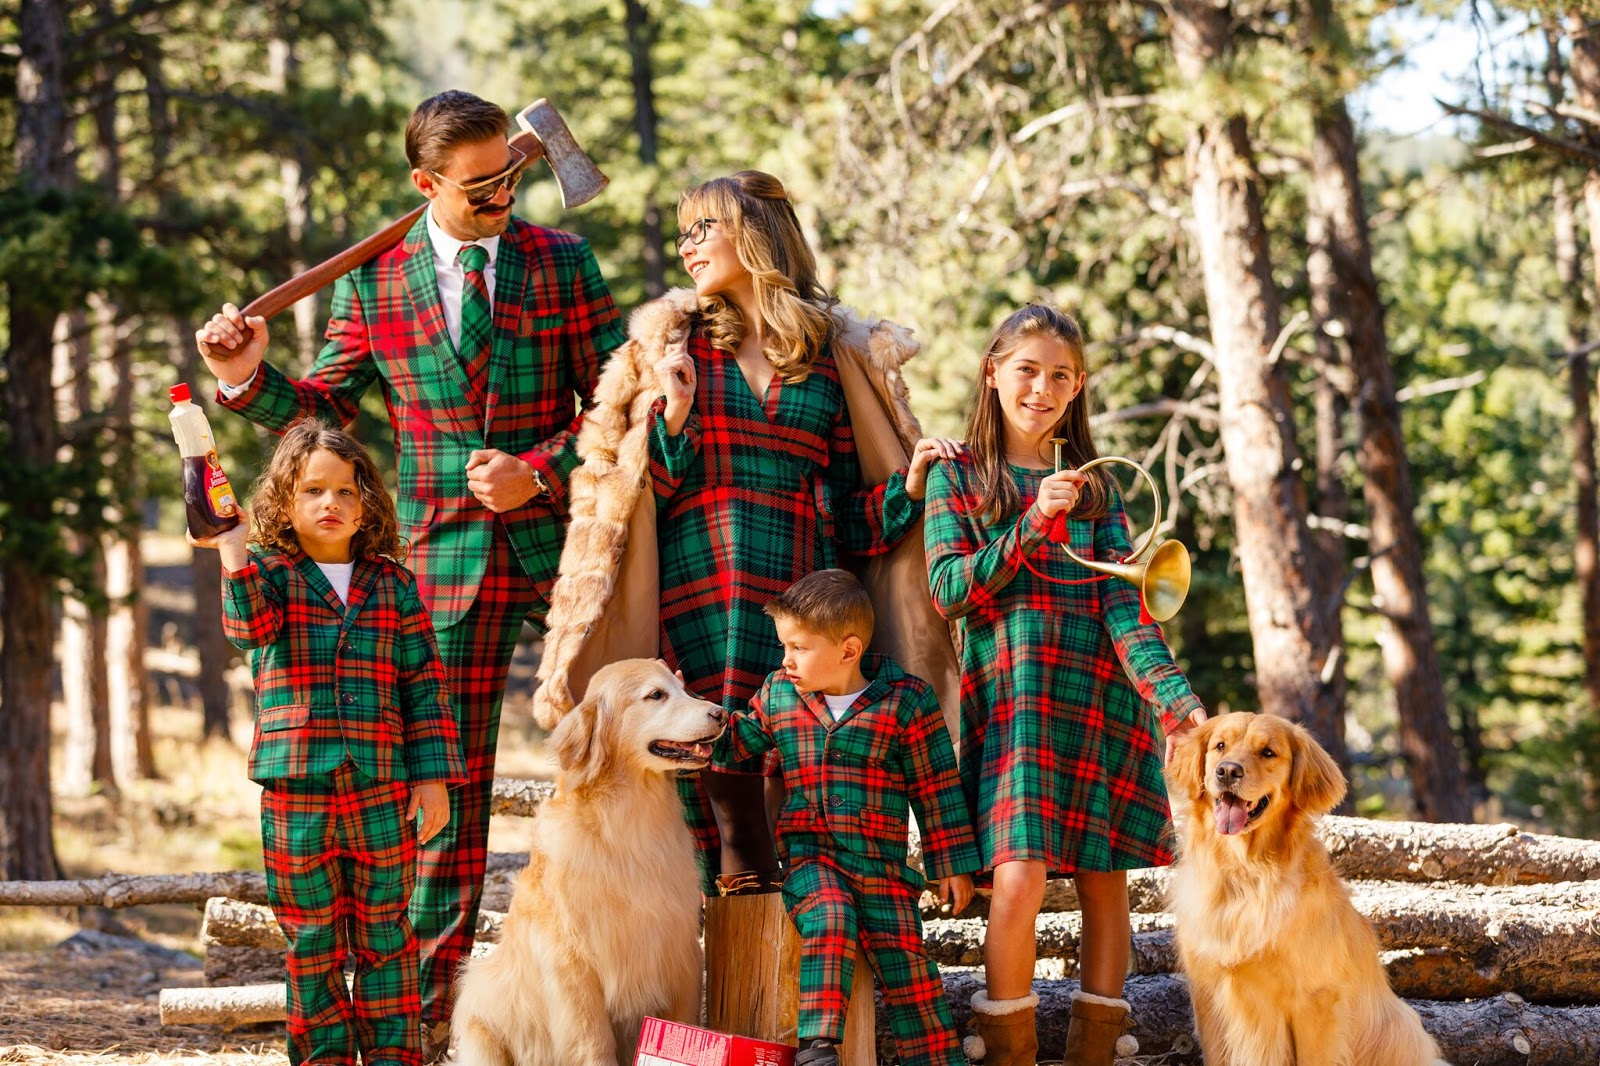 Shinesty Christmas Suits.Ugly Christmas Outfits From Shinesty Review Party Of Four